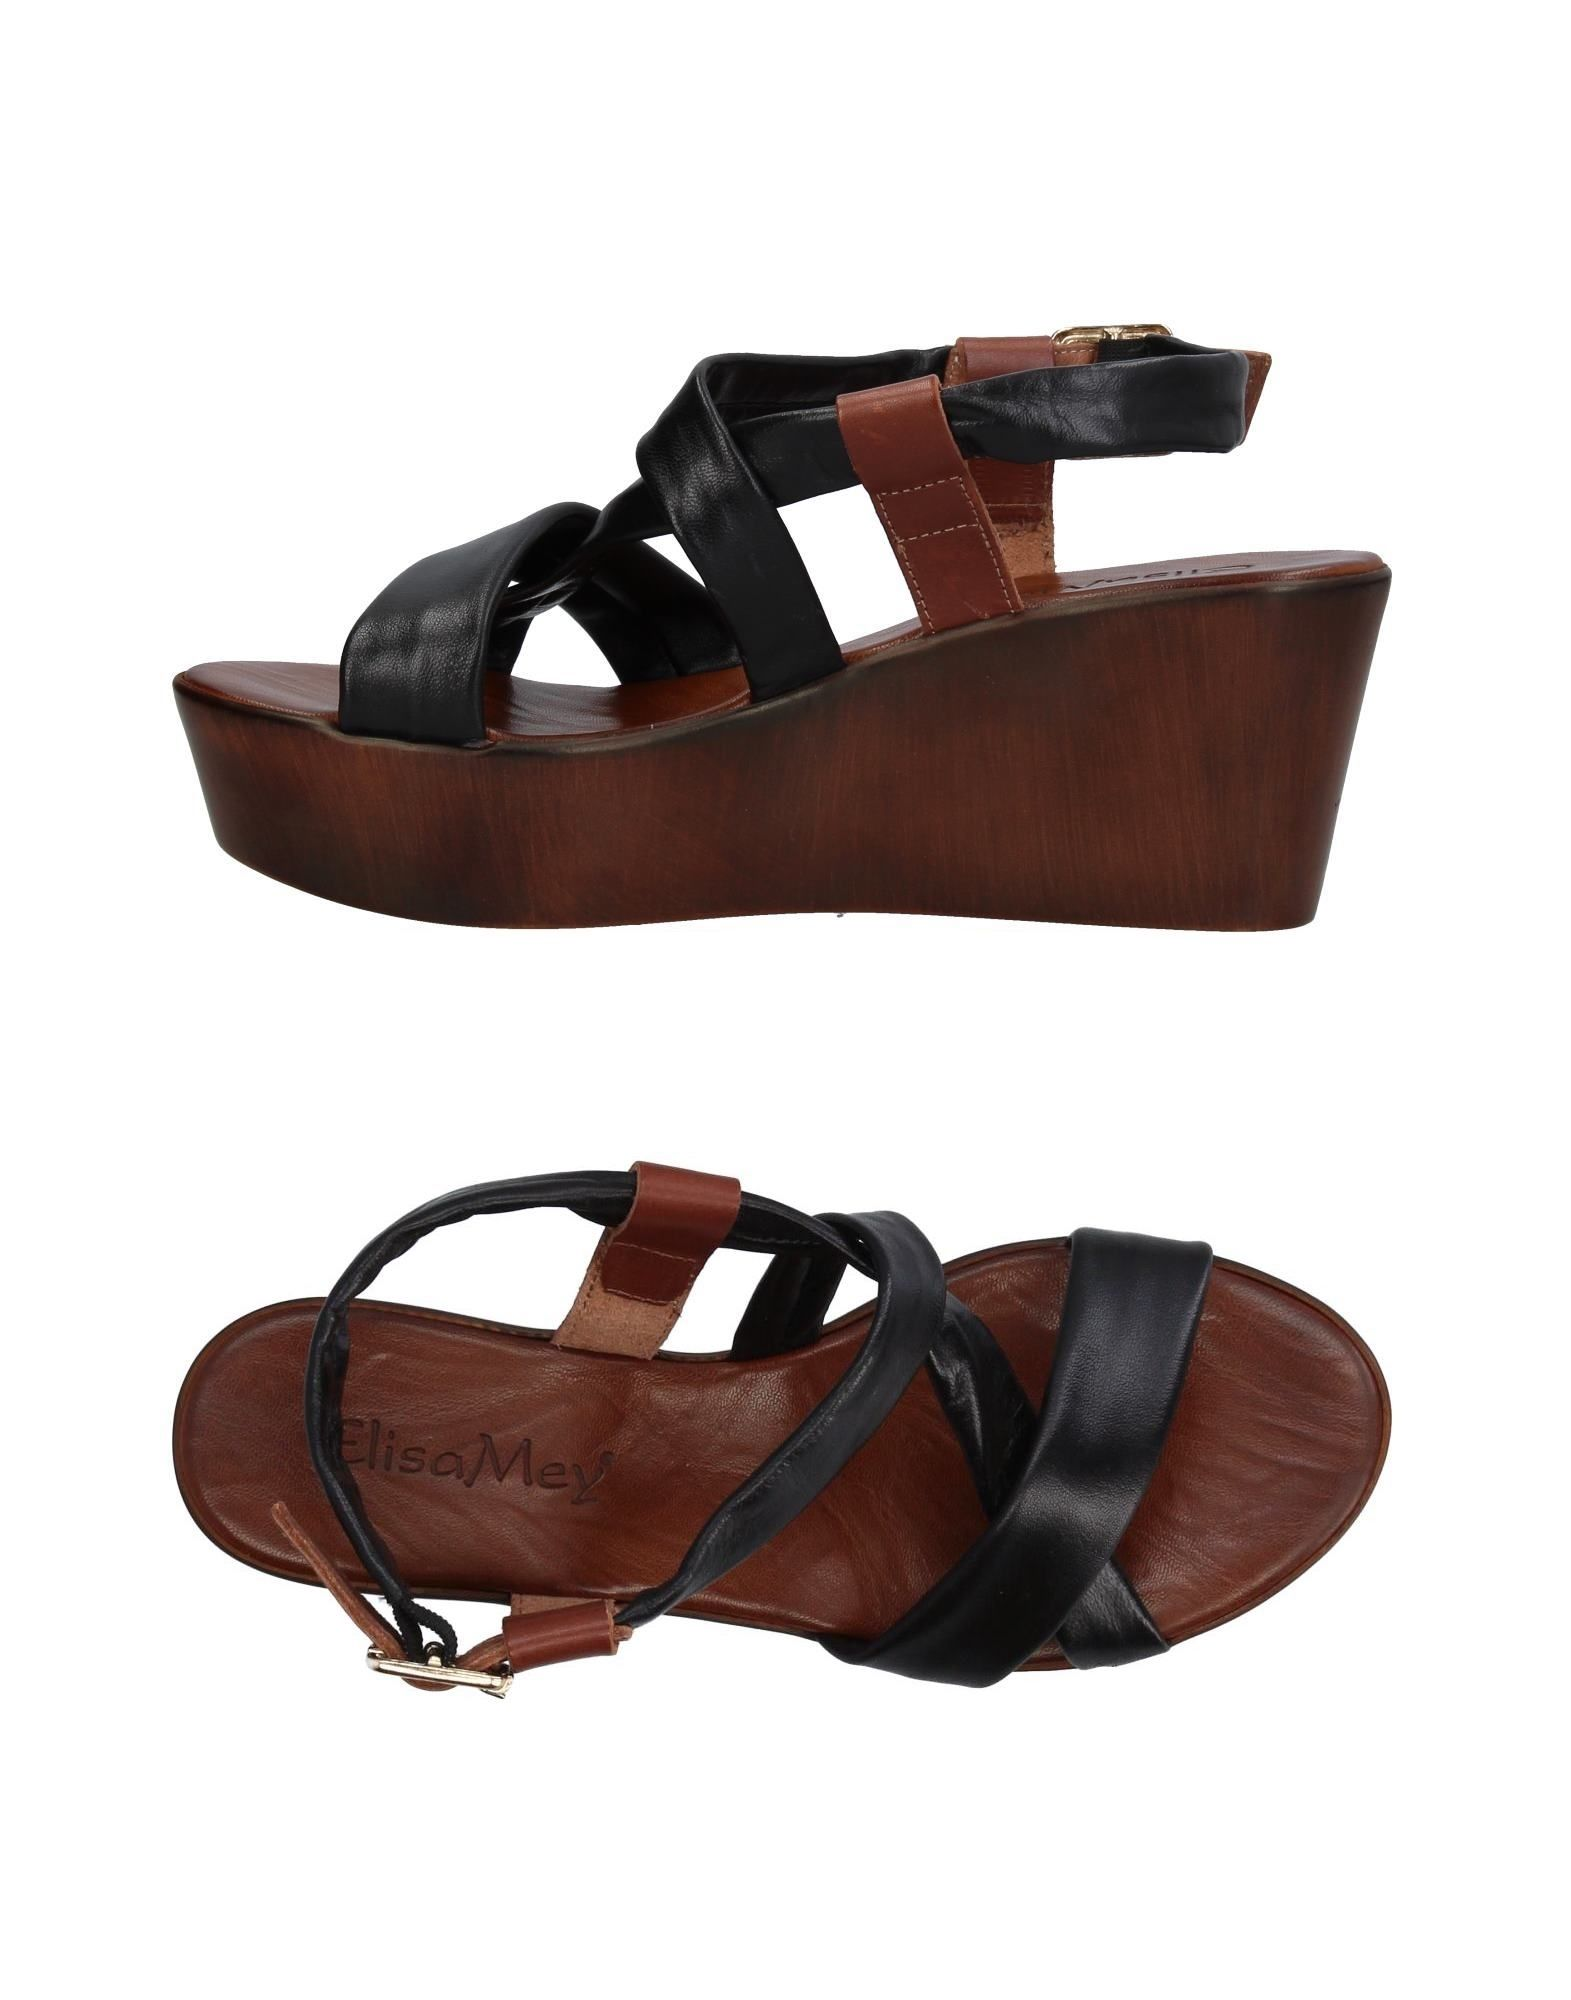 CHAUSSURES - SandalesElisa Mey